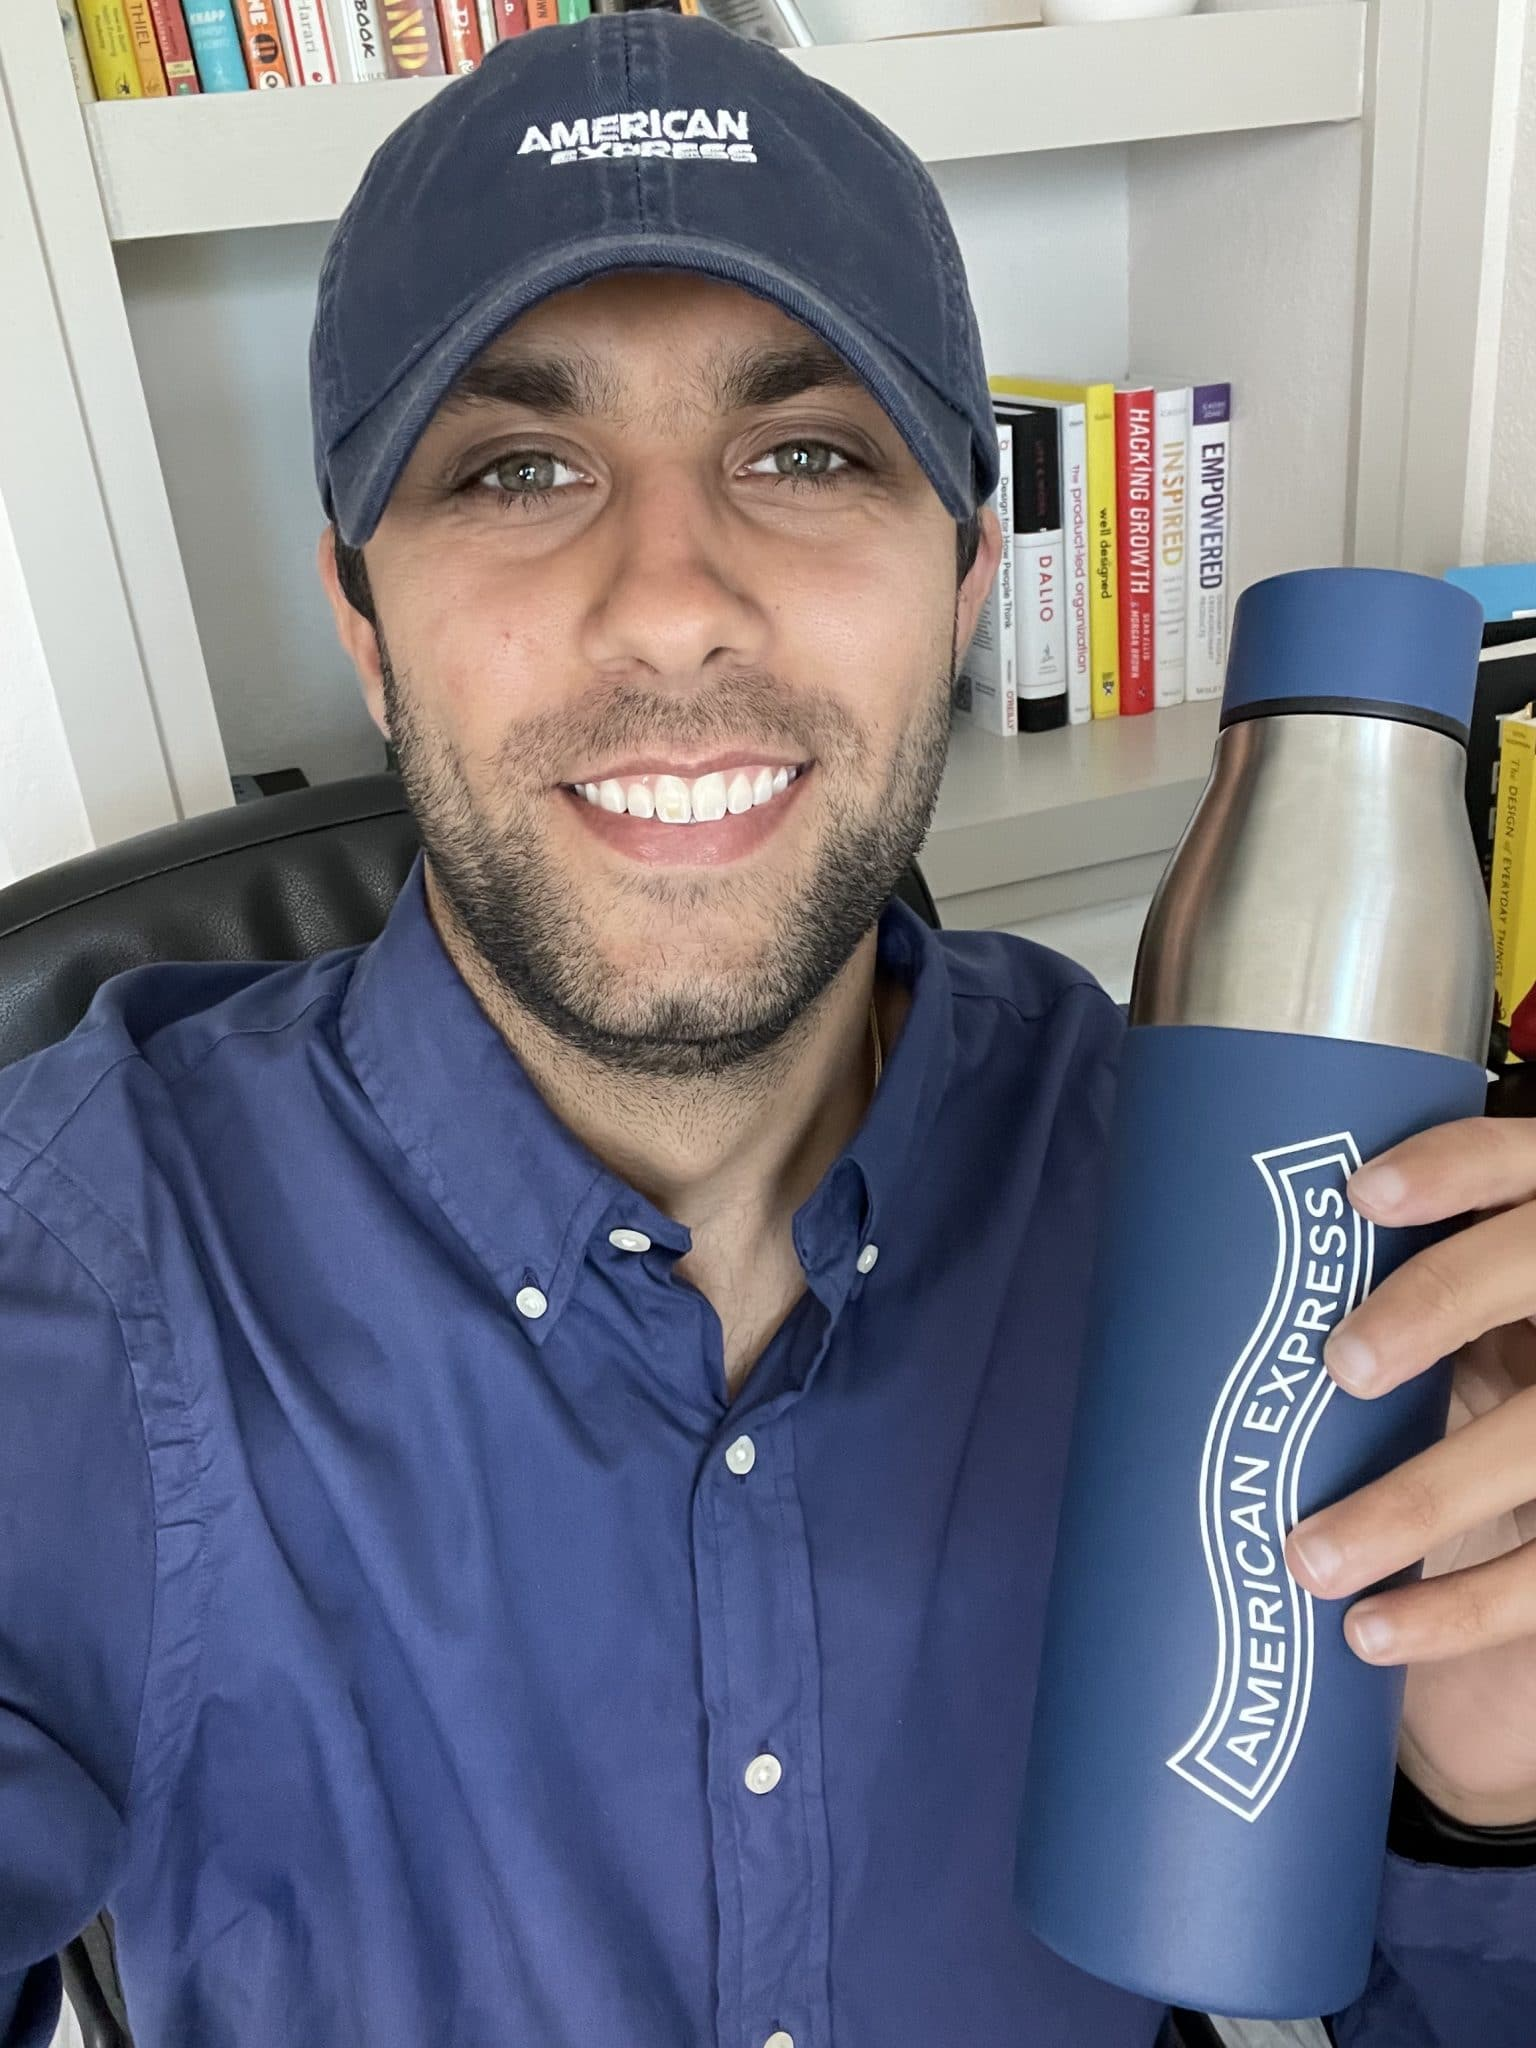 Alexander Chopra takes a selfie wearing an American Express baseball hat and holds an American Express water bottle